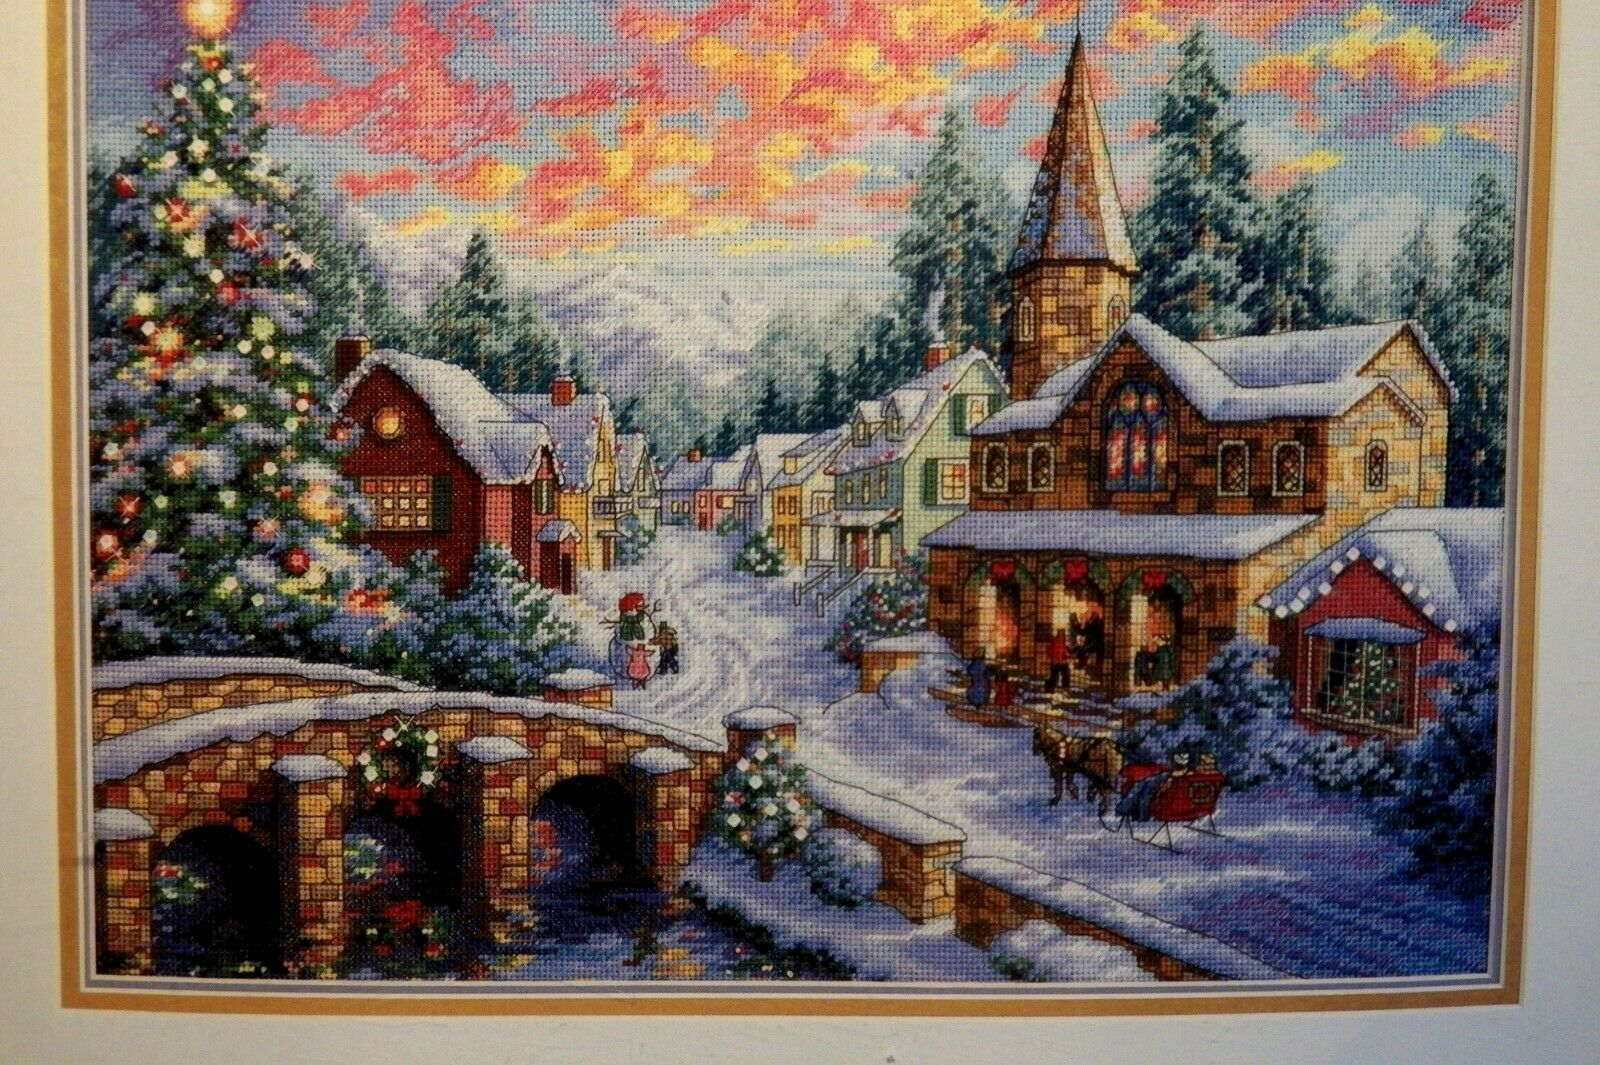 Dimensions Gold Collection Counted Cross Stitch Kit Holiday Village Christmas Cross Stitch 16 Count Dove Grey Aida 12 x 16